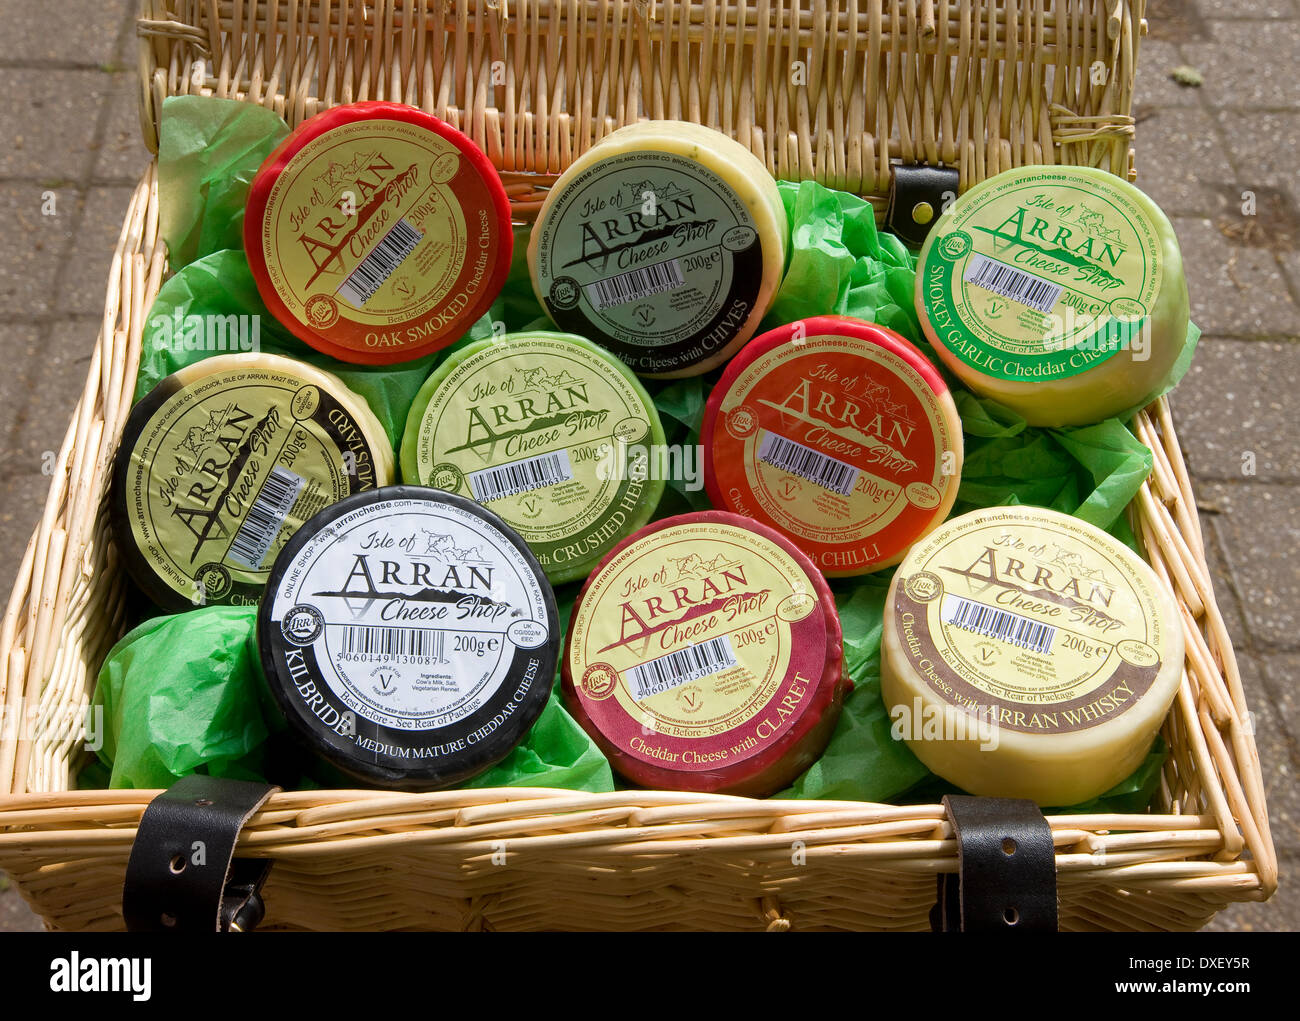 Une sélection de fromages, Arran Cladach, Île d'Arran. Photo Stock